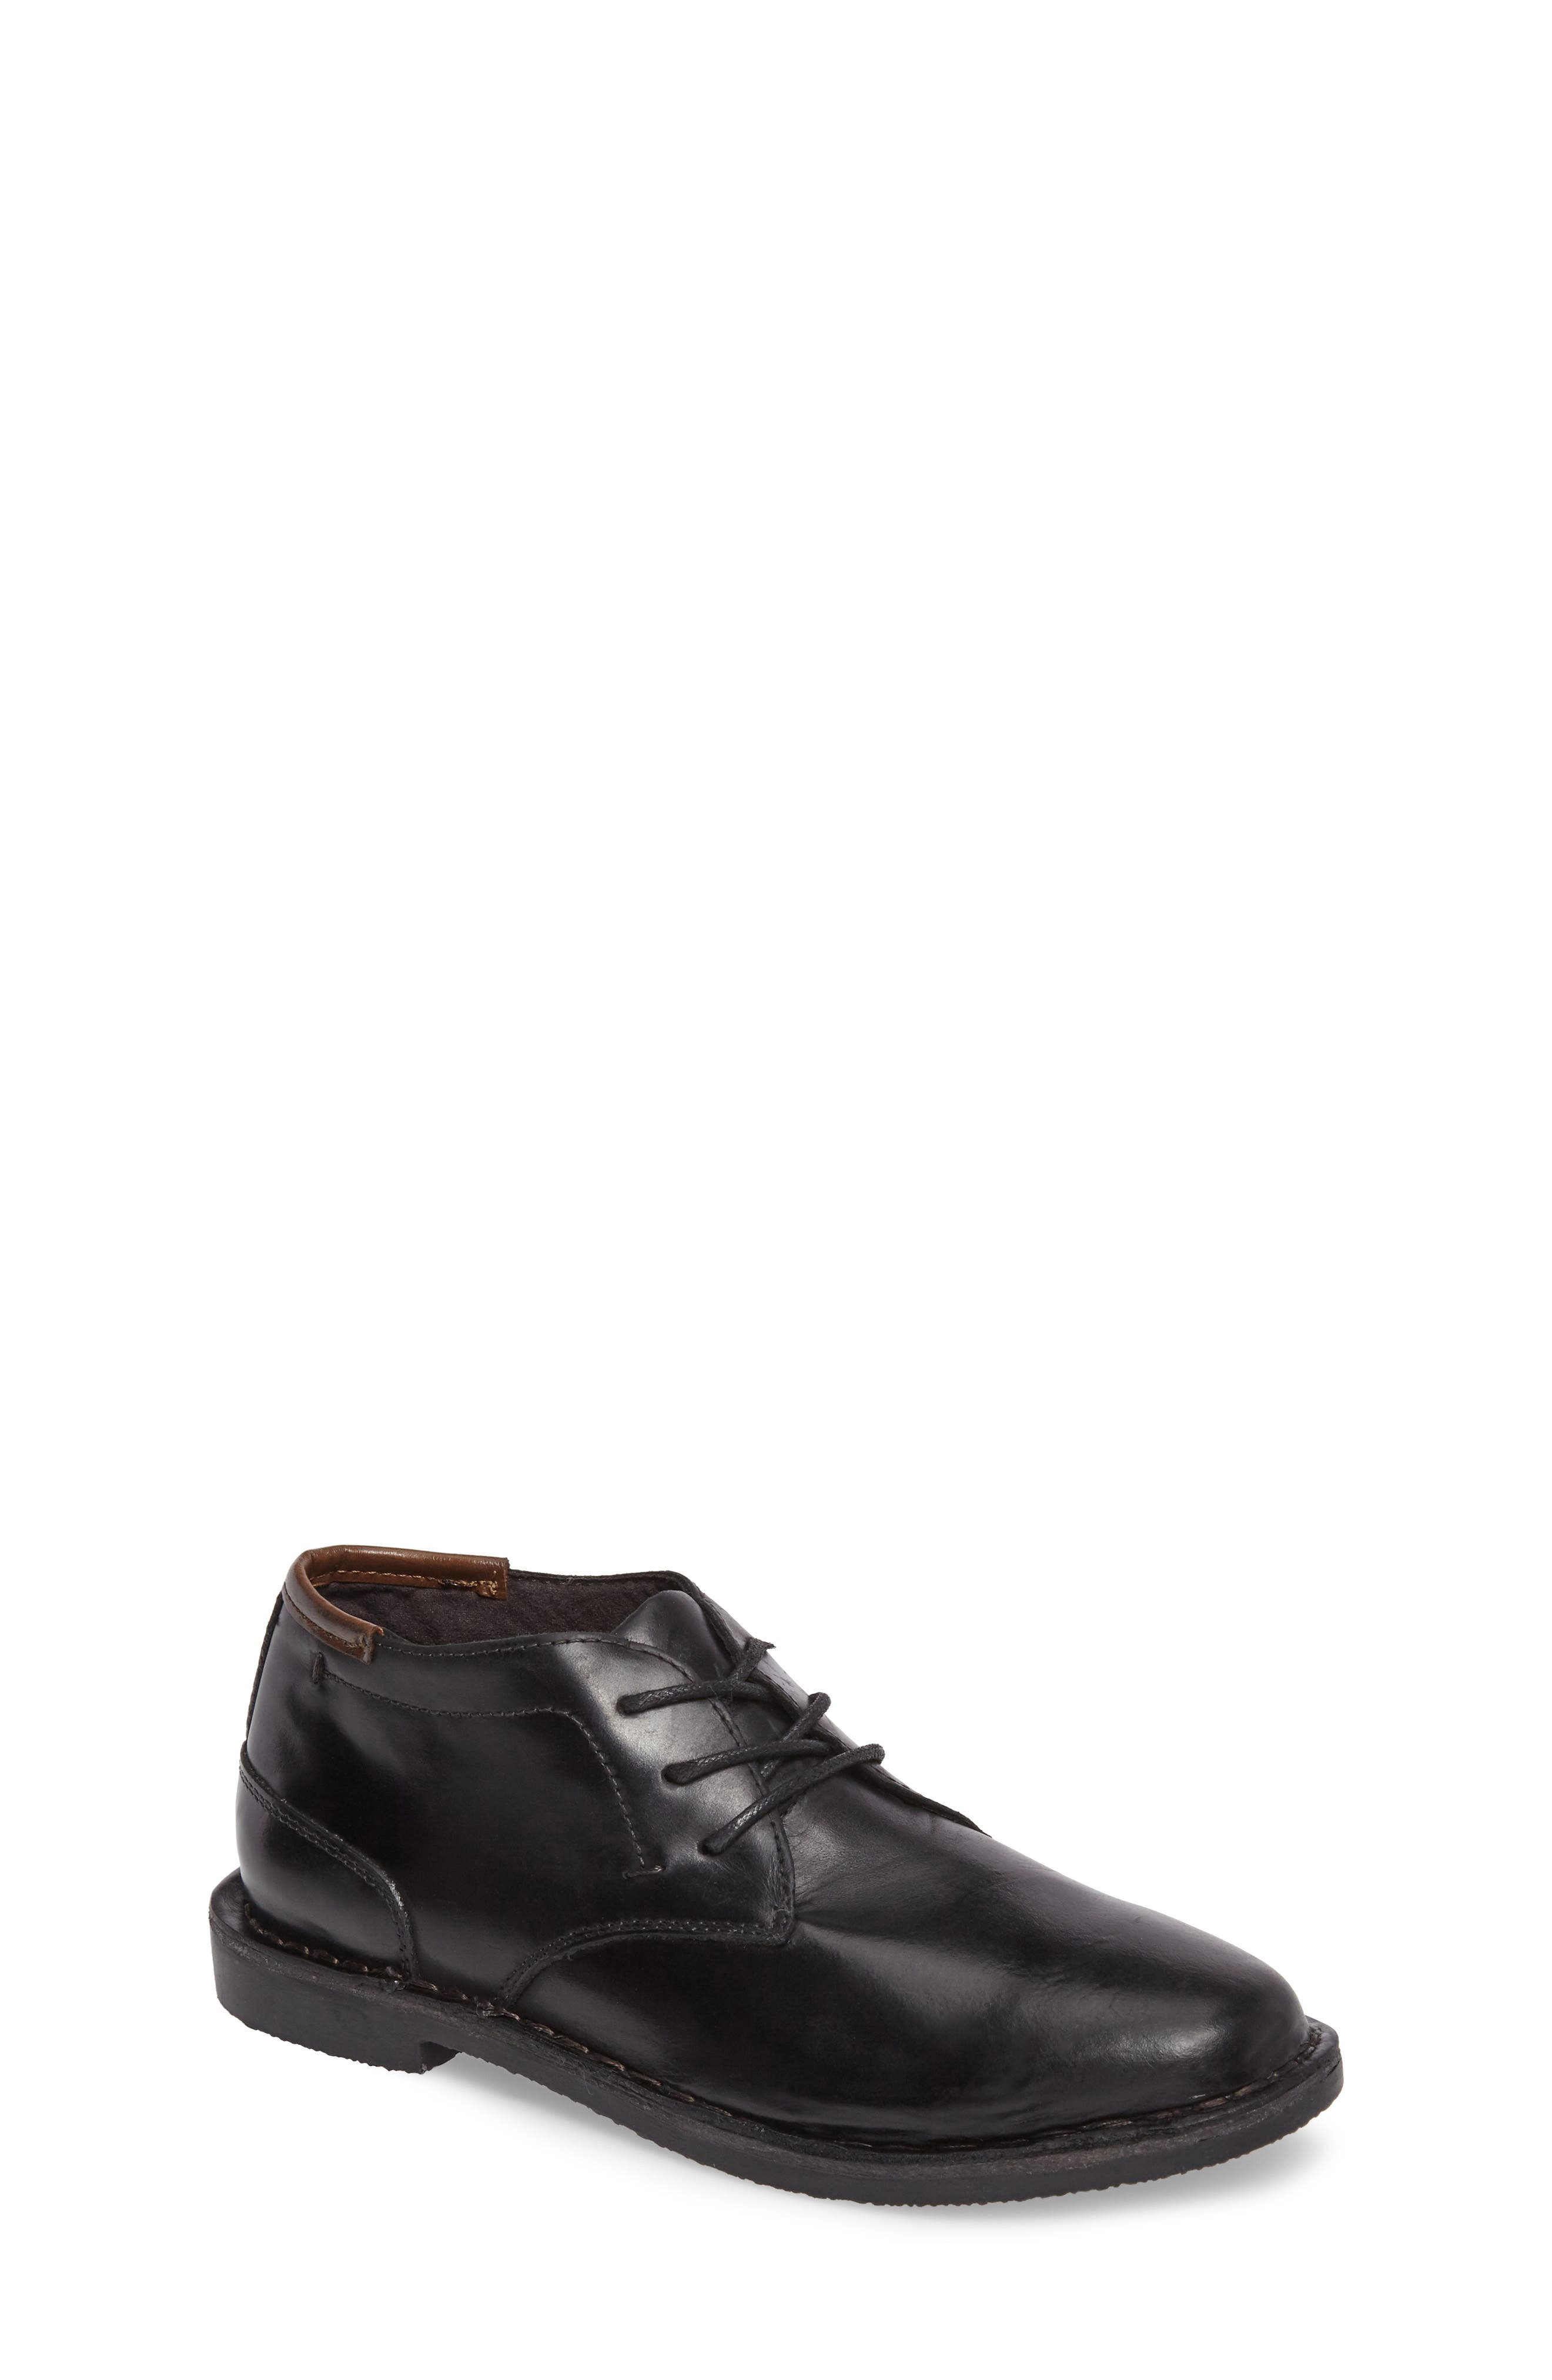 KENNETH COLE NEW YORK, Real Deal Chukka Boot, Main thumbnail 1, color, BLACK LEATHER